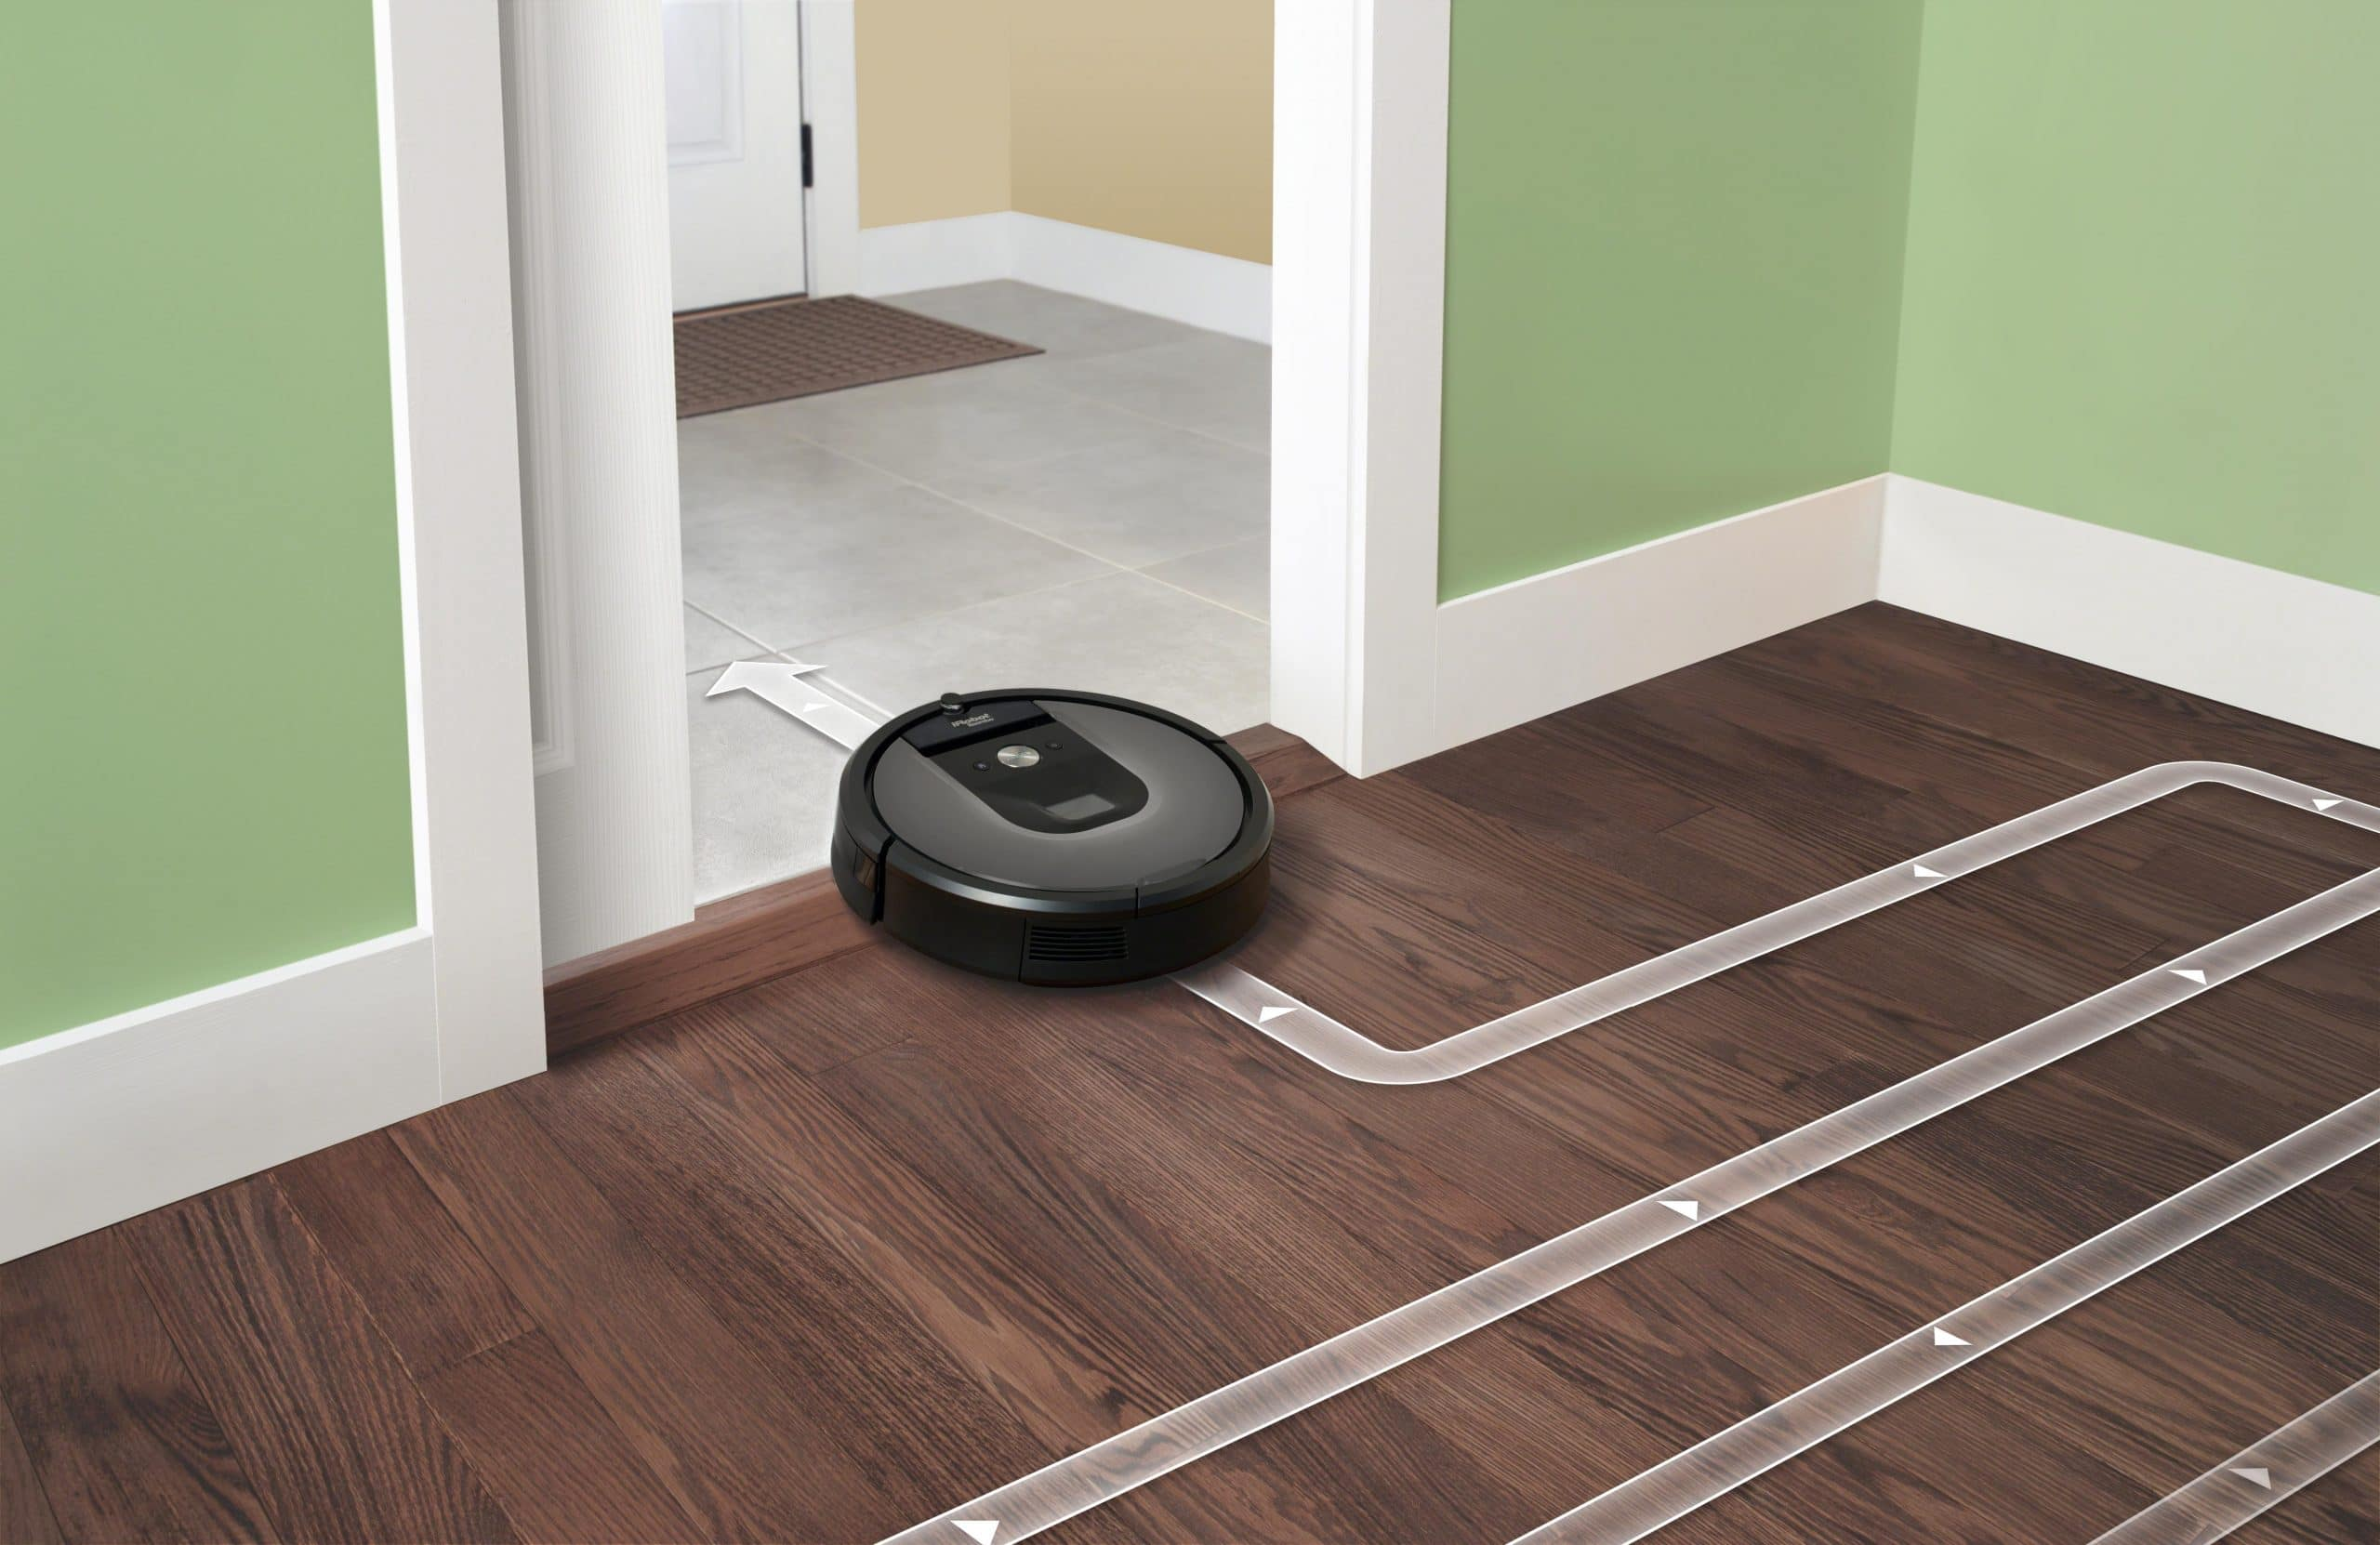 Roomba, iRobot, selling data, selling maps, map data, robot, vacuum cleaner, vacuum, robovac, smart home